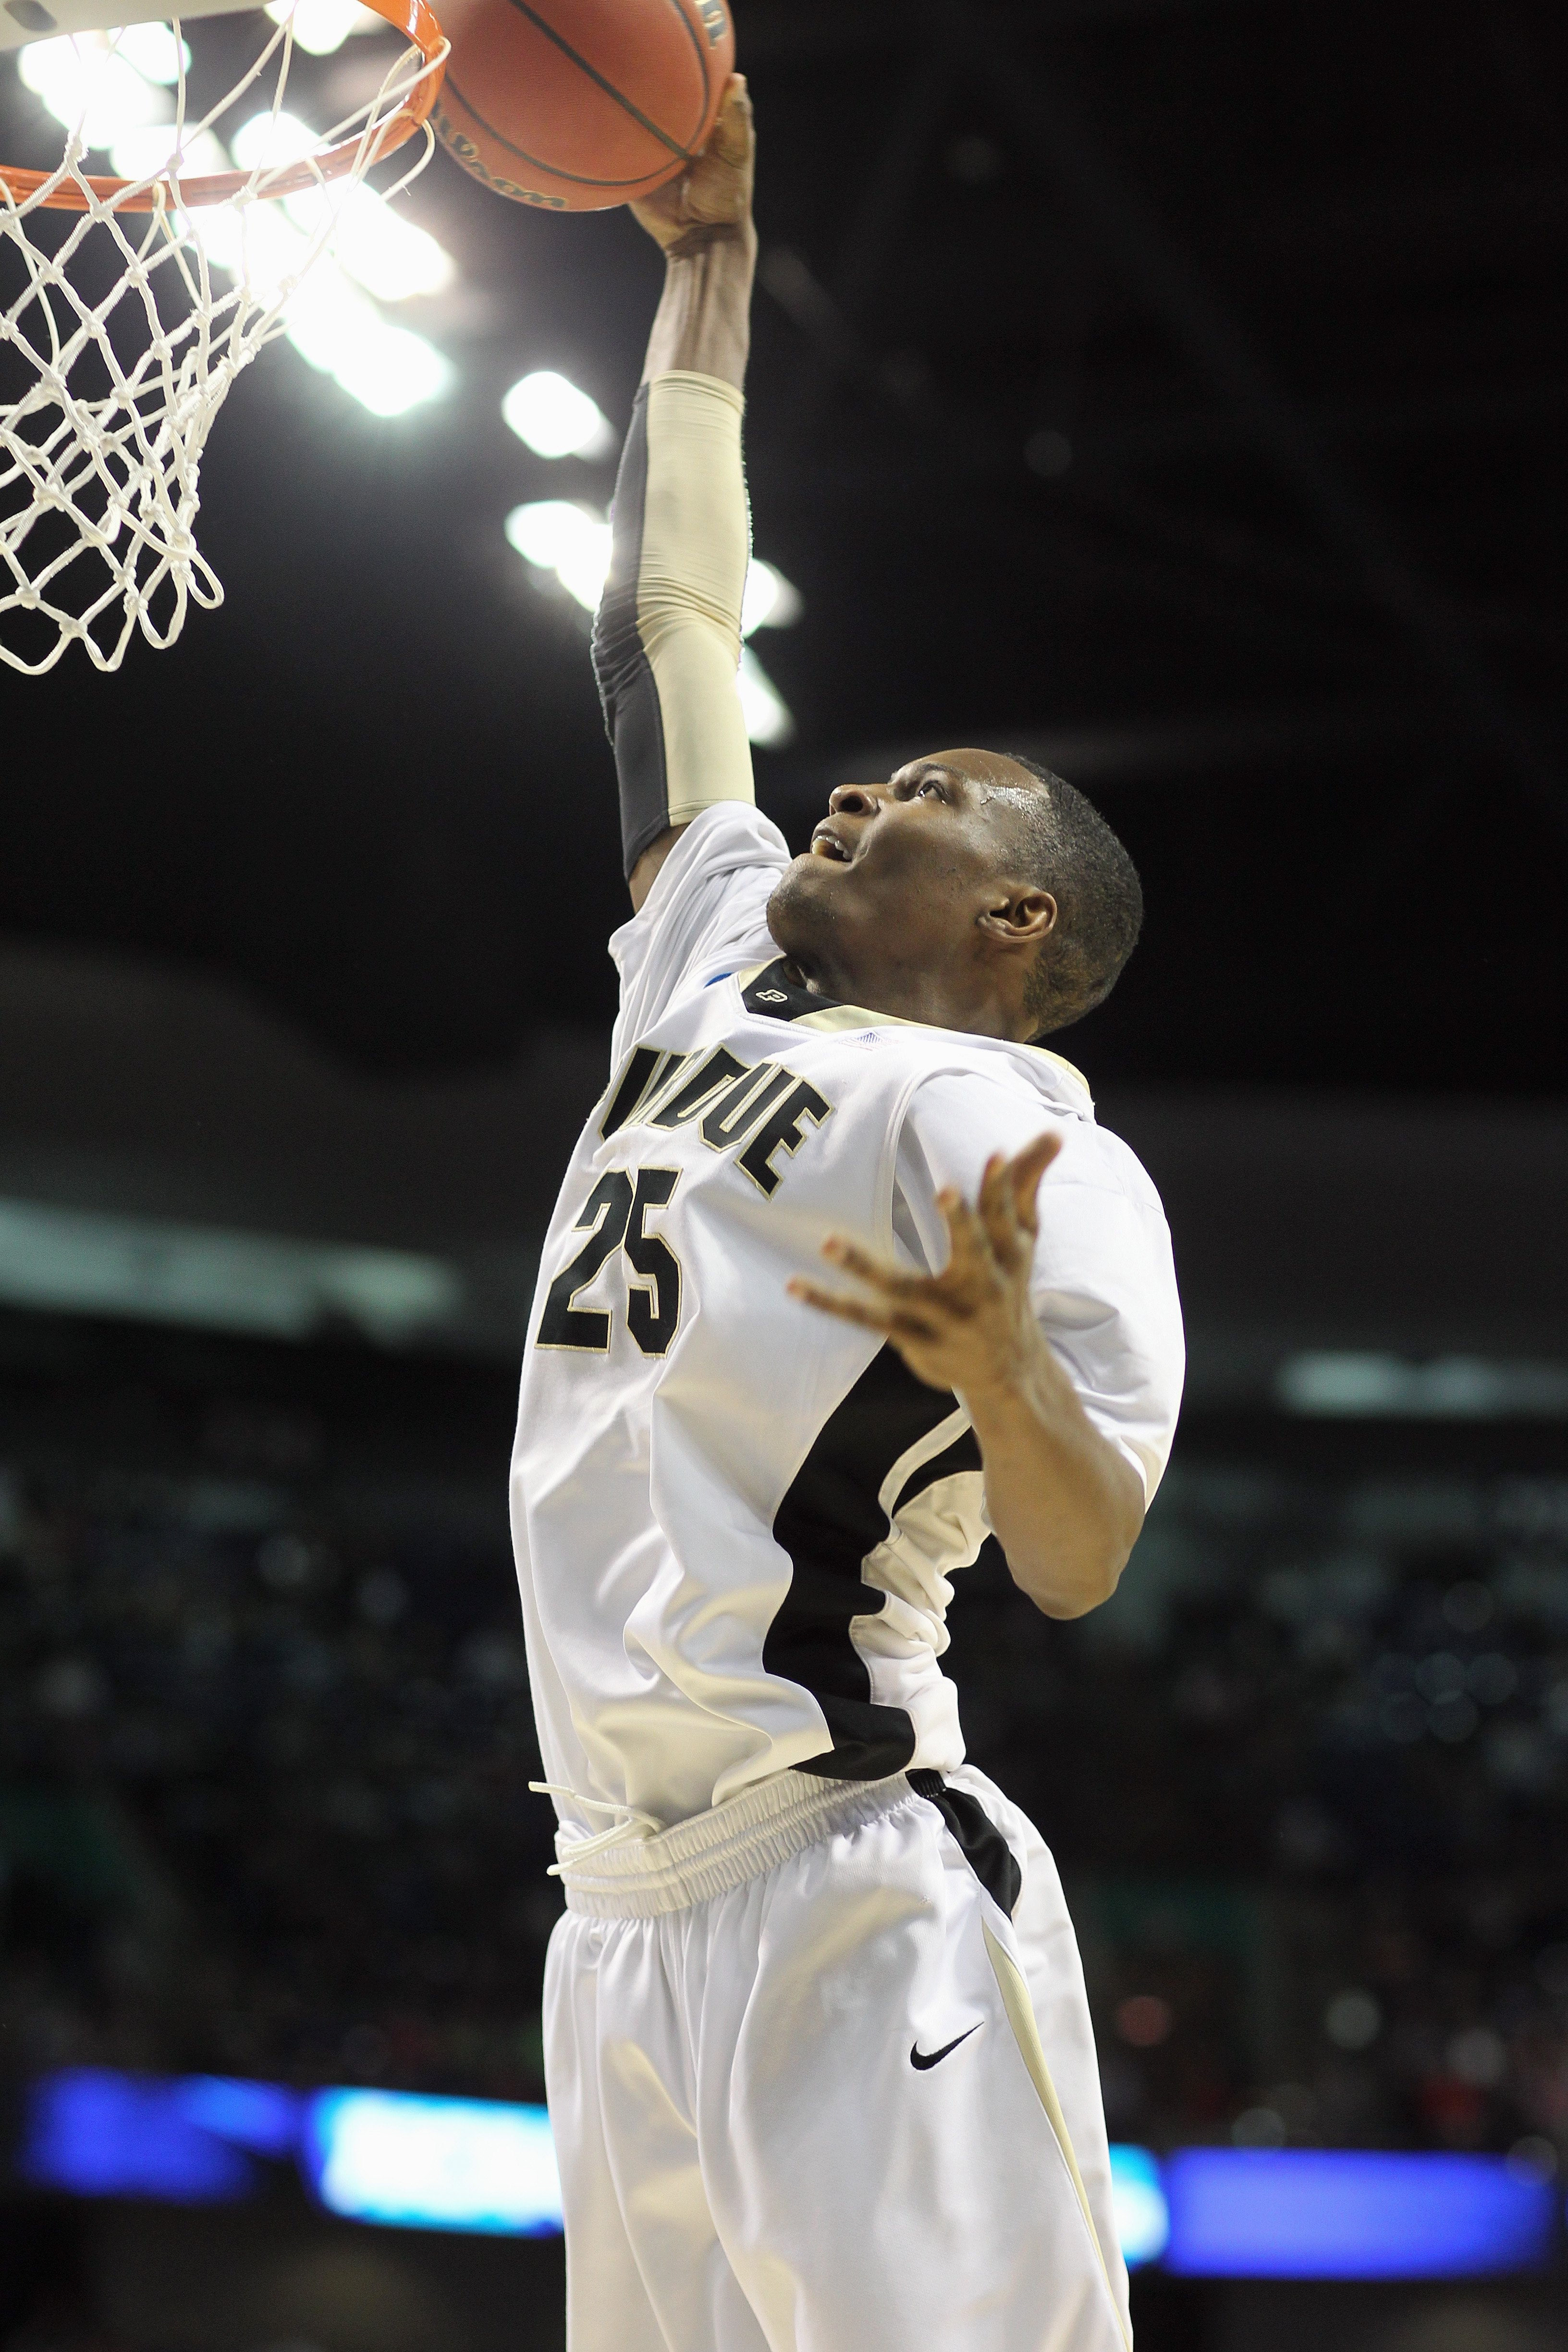 SPOKANE,WA - MARCH 21: JaJuan Johnson #25 of the Purdue Boilermakers dunks the ball against the Texas A&M Aggies during the second round of the 2010 NCAA men's basketball tournament at the Spokane Arena on March 21, 2010 in Spokane, Washington. Purdue def